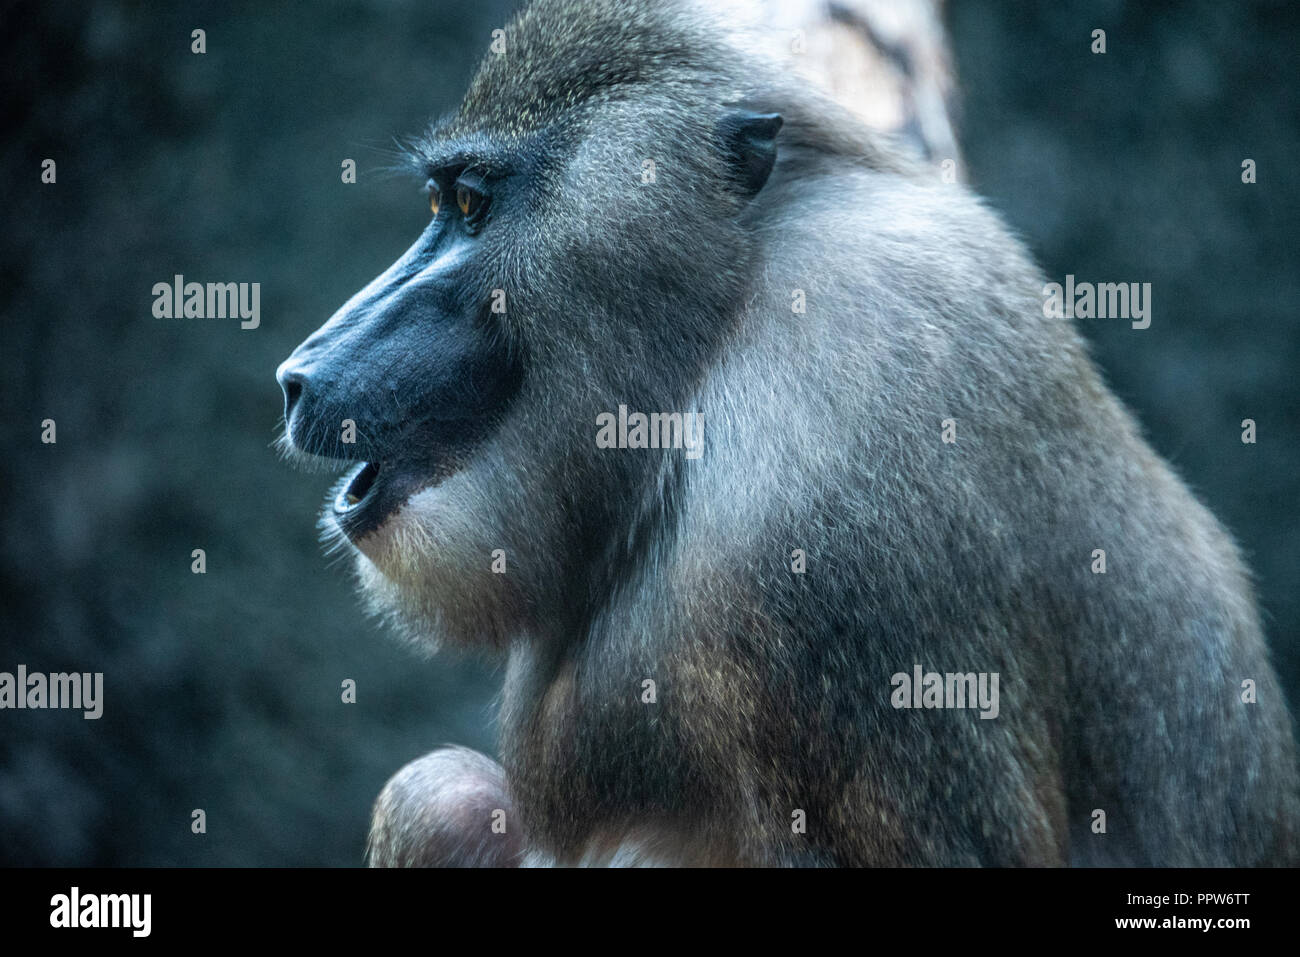 African Drill Stock Photos & African Drill Stock Images - Alamy